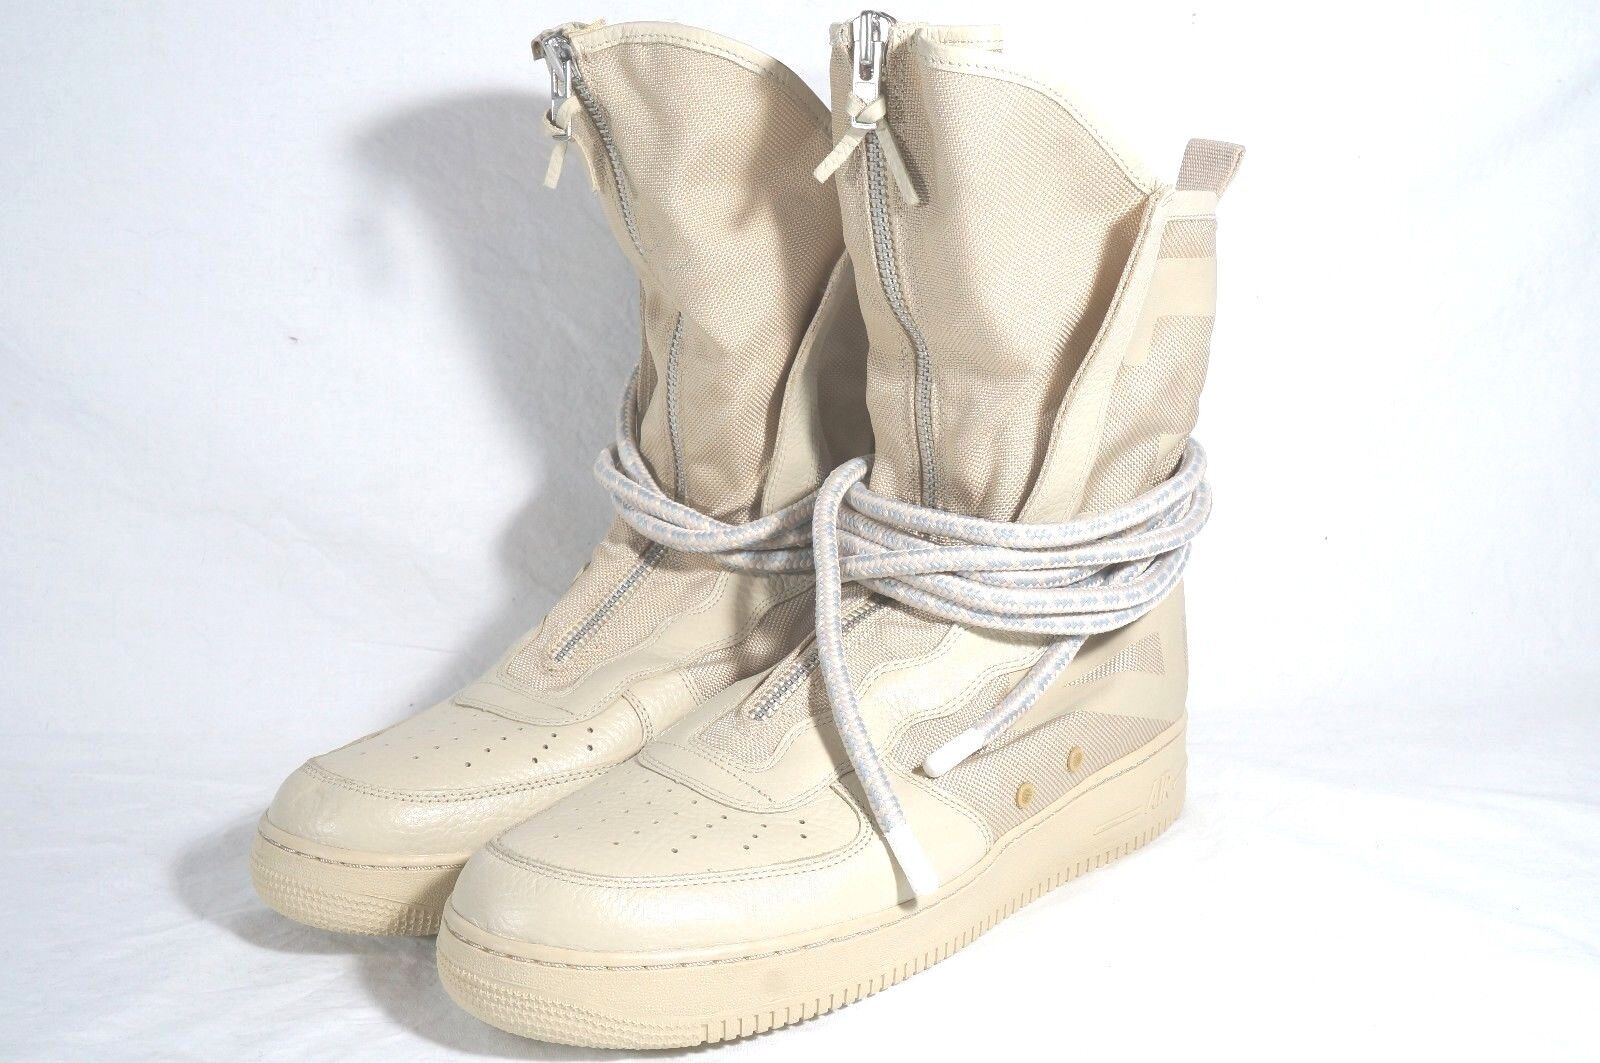 Nike SF AF1 Air Force 1 Special Field Hi Rattan Tan AA1128-200 Men's Size 15